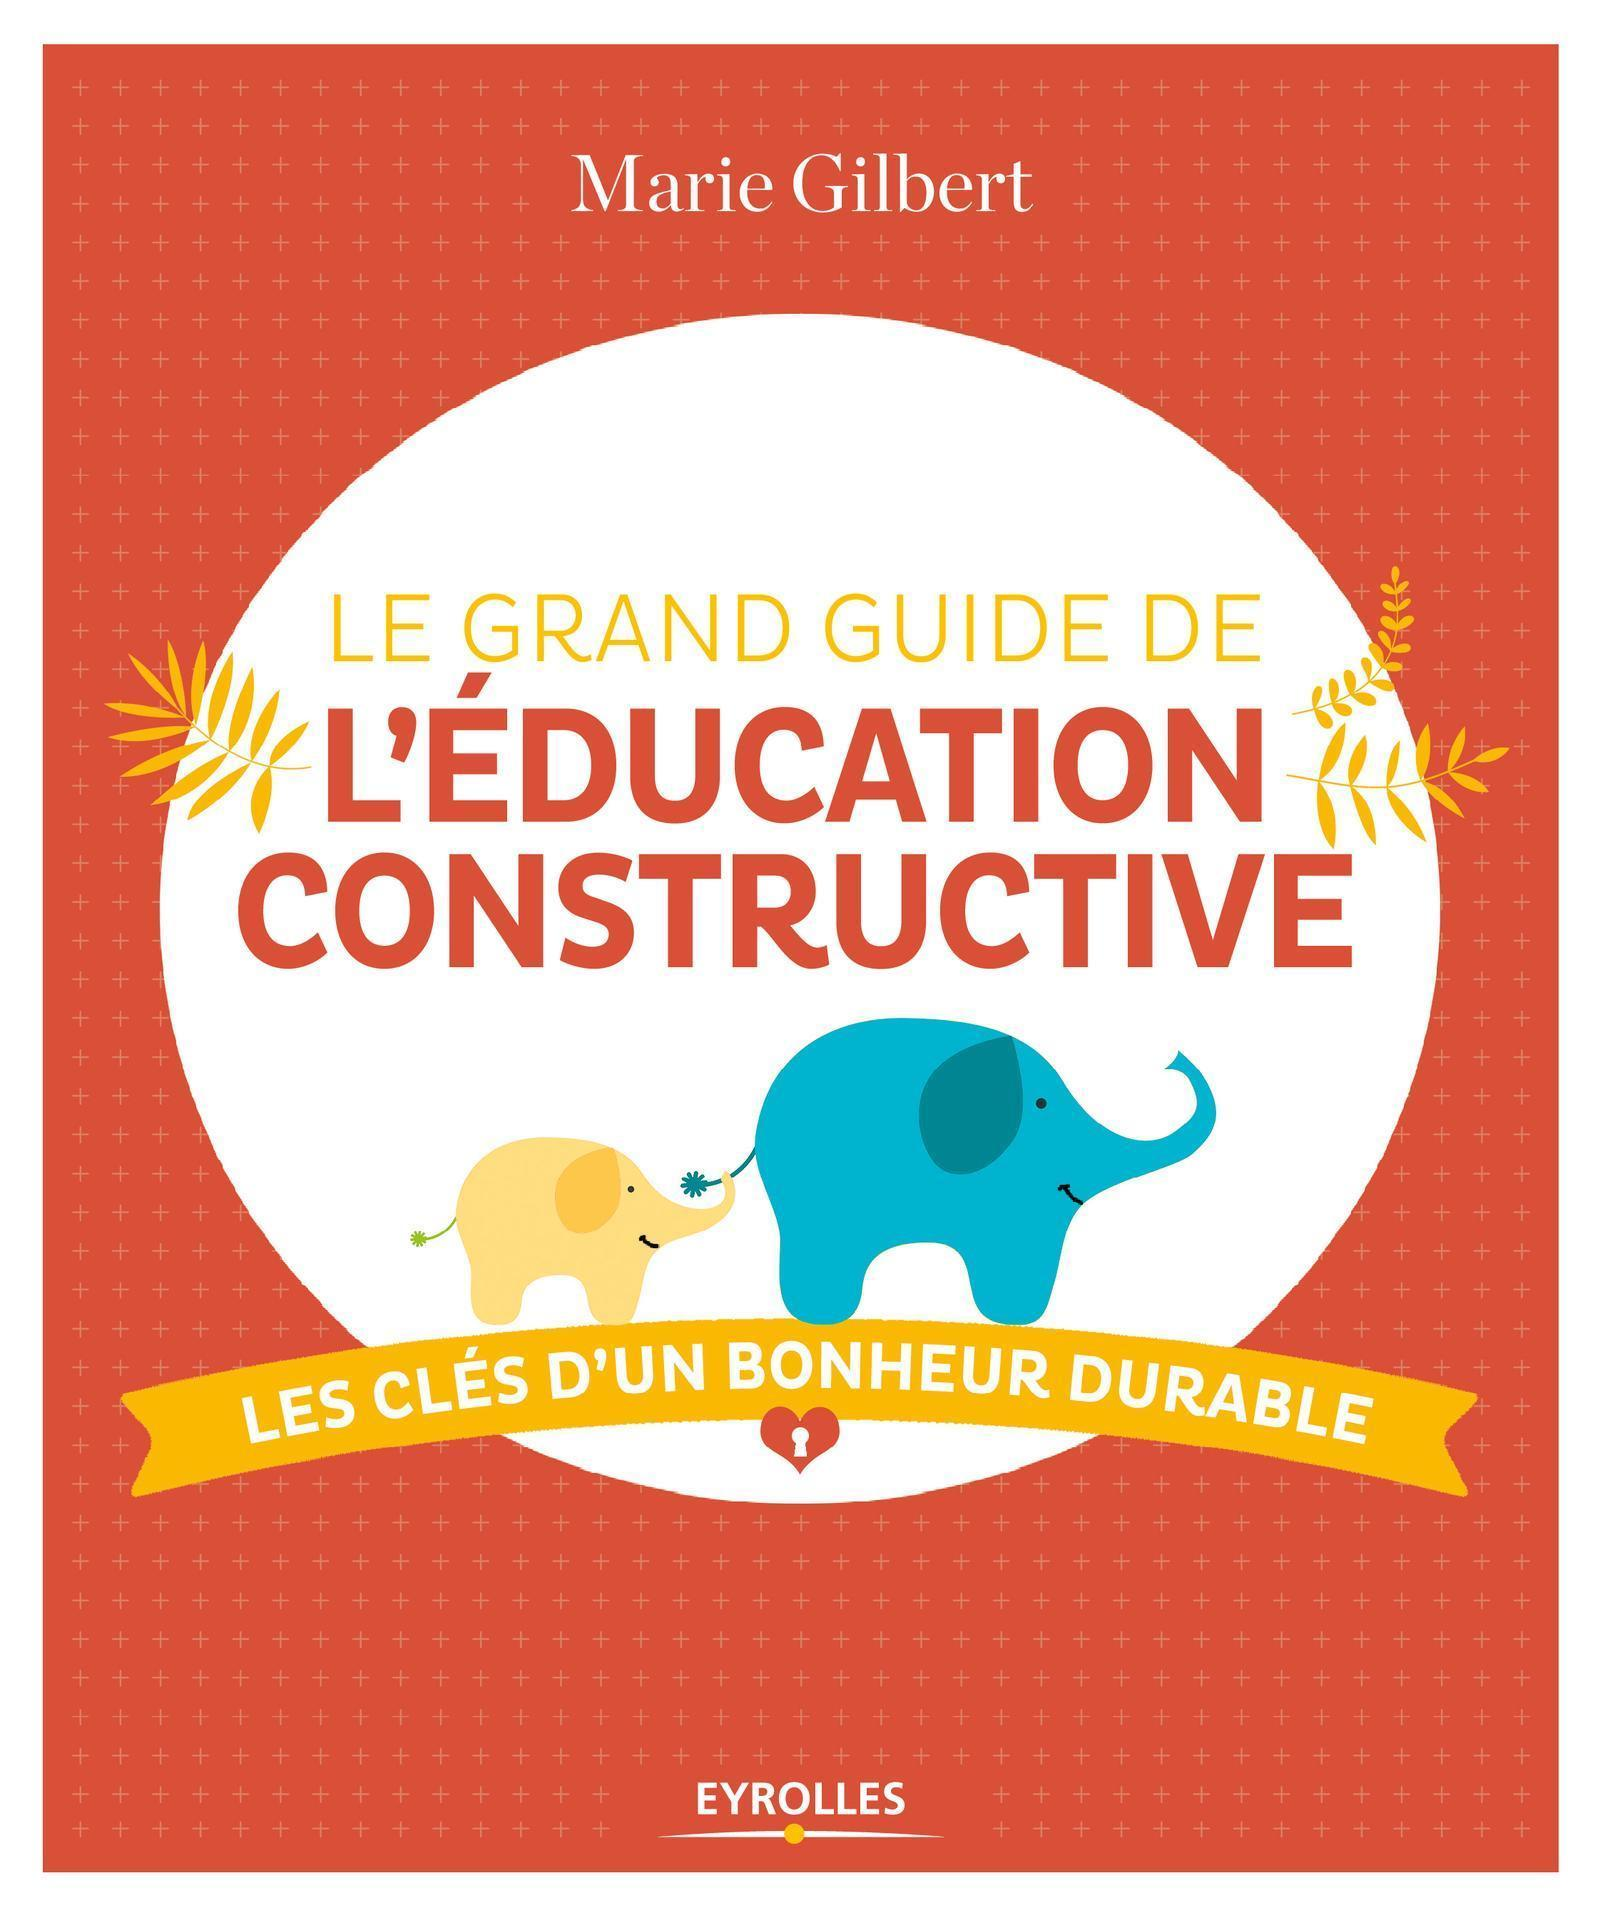 LE GRAND GUIDE DE L'EDUCATION CONSTRUCTIVE - LES CLES D'UN BONHEUR DURABLE